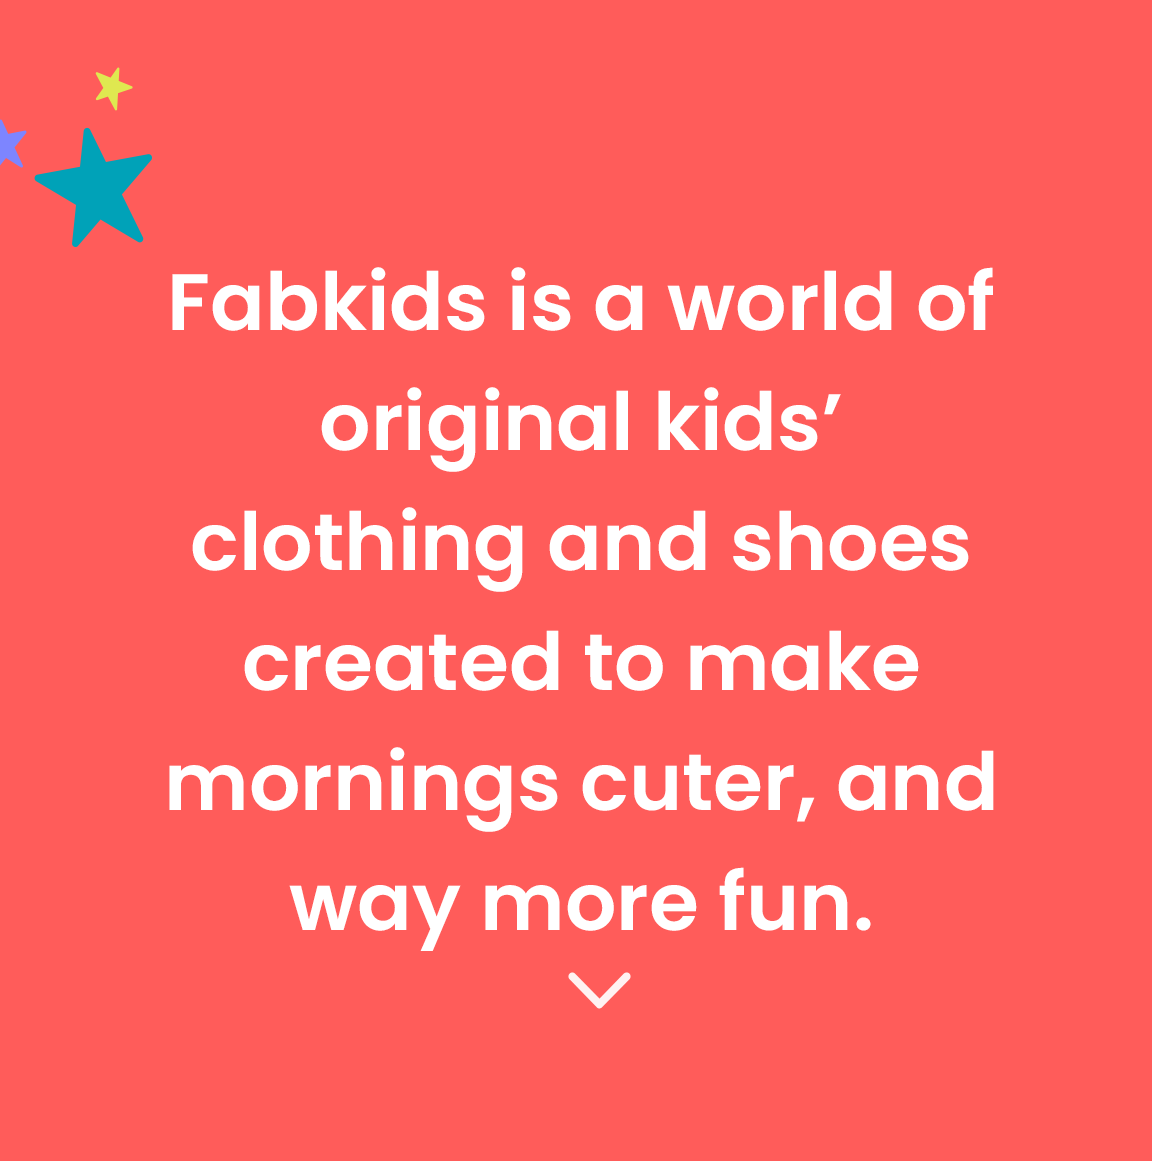 FabKids is a world of original kids' clothing and shoes created to make mornings cuter, and way more fun.